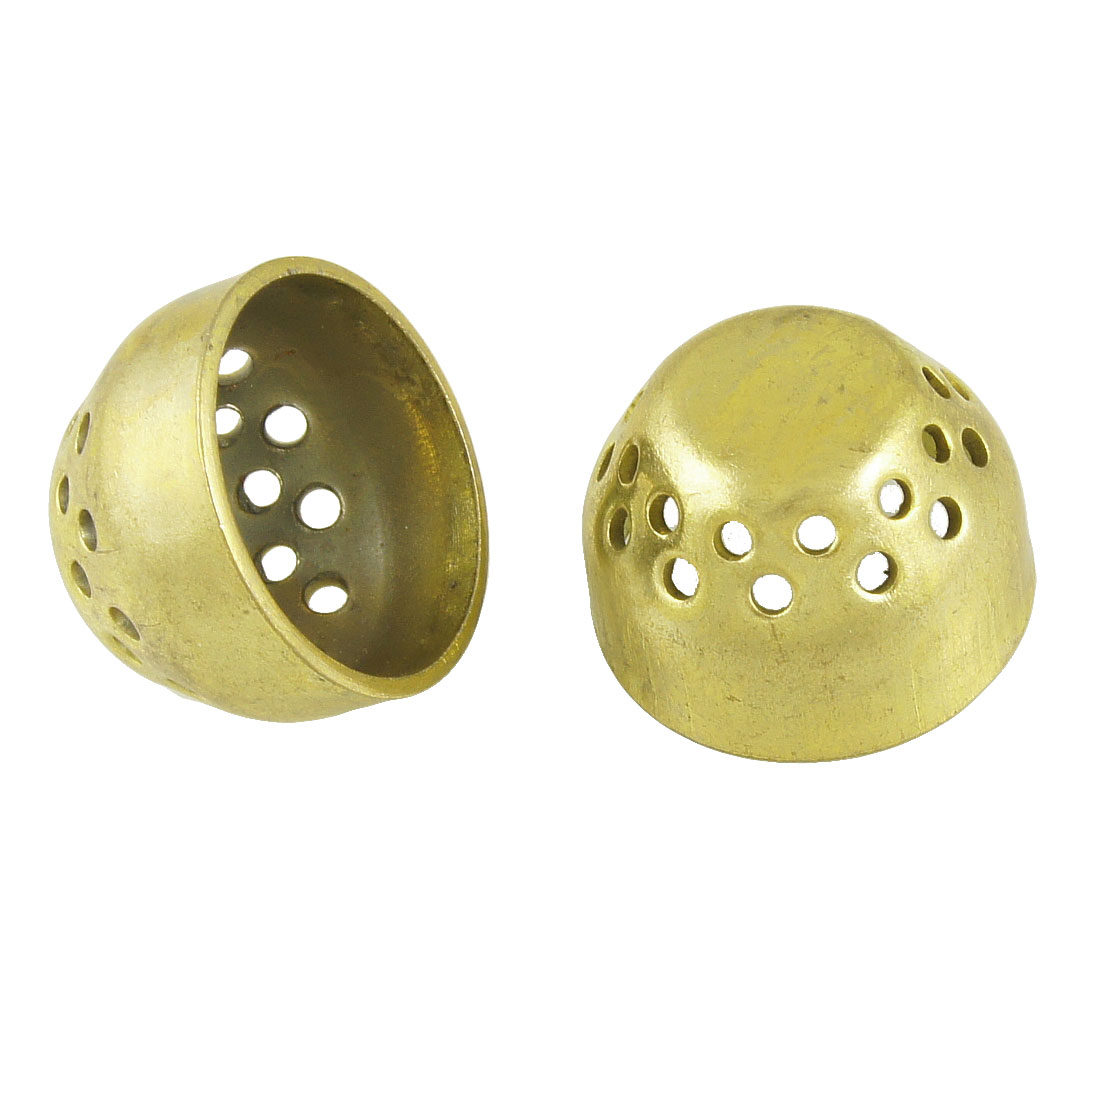 Pair Replacement Gas Stove Component Brass Burner Cap 21mm